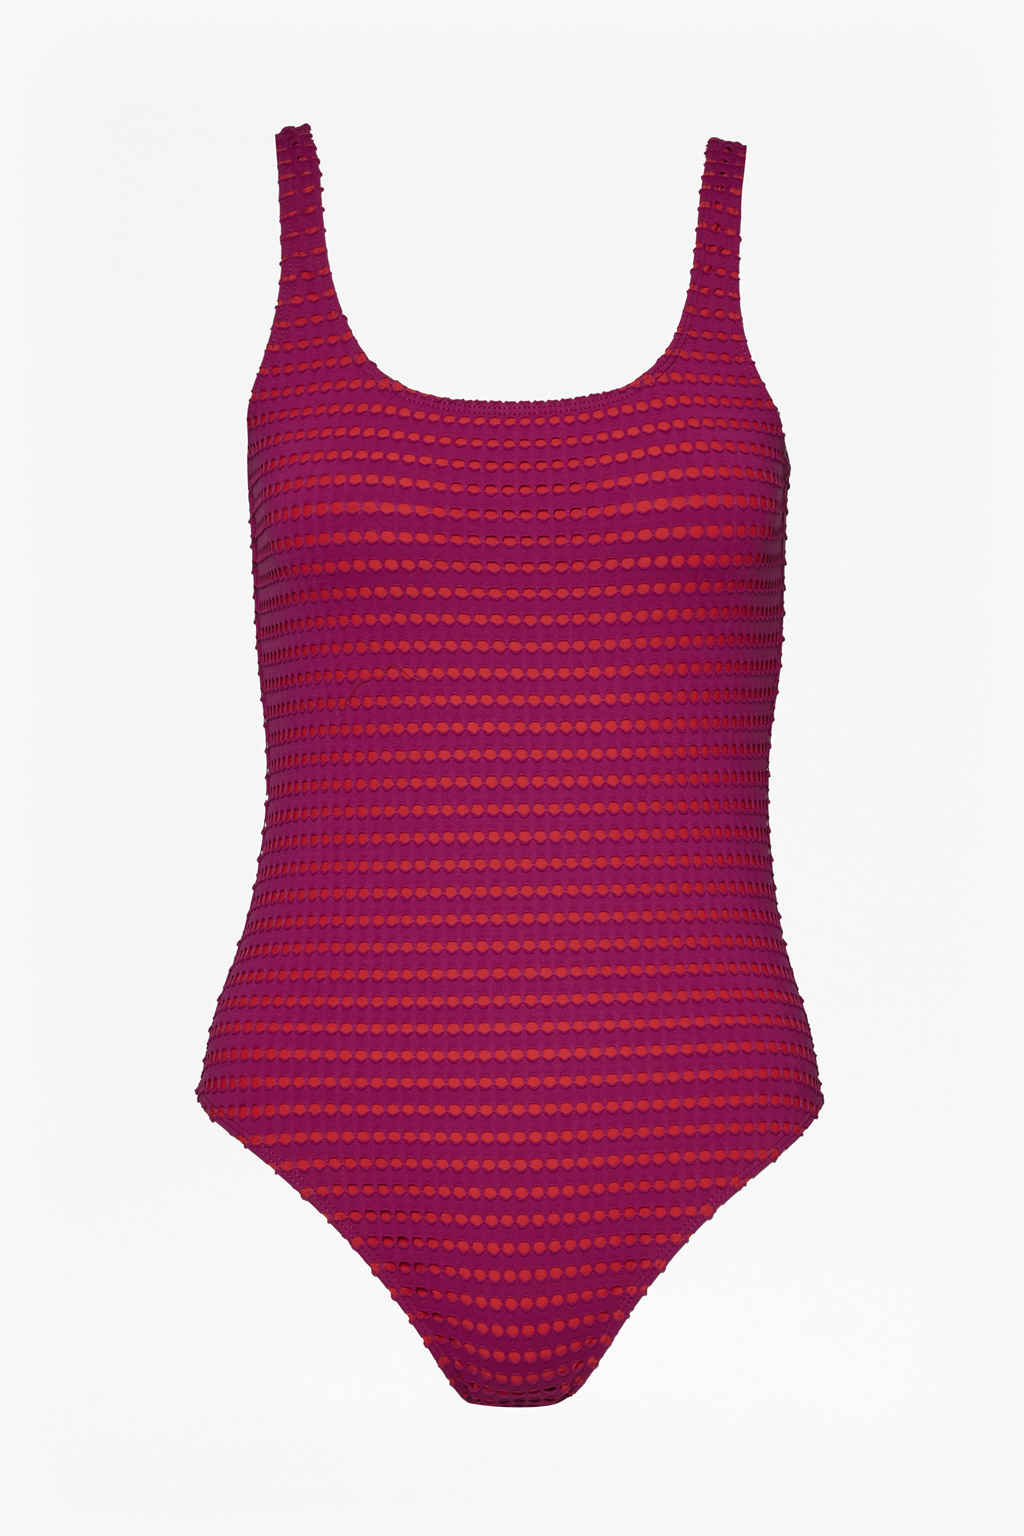 Pointelle Swimming Costume Festival Clothing French Connection Usa